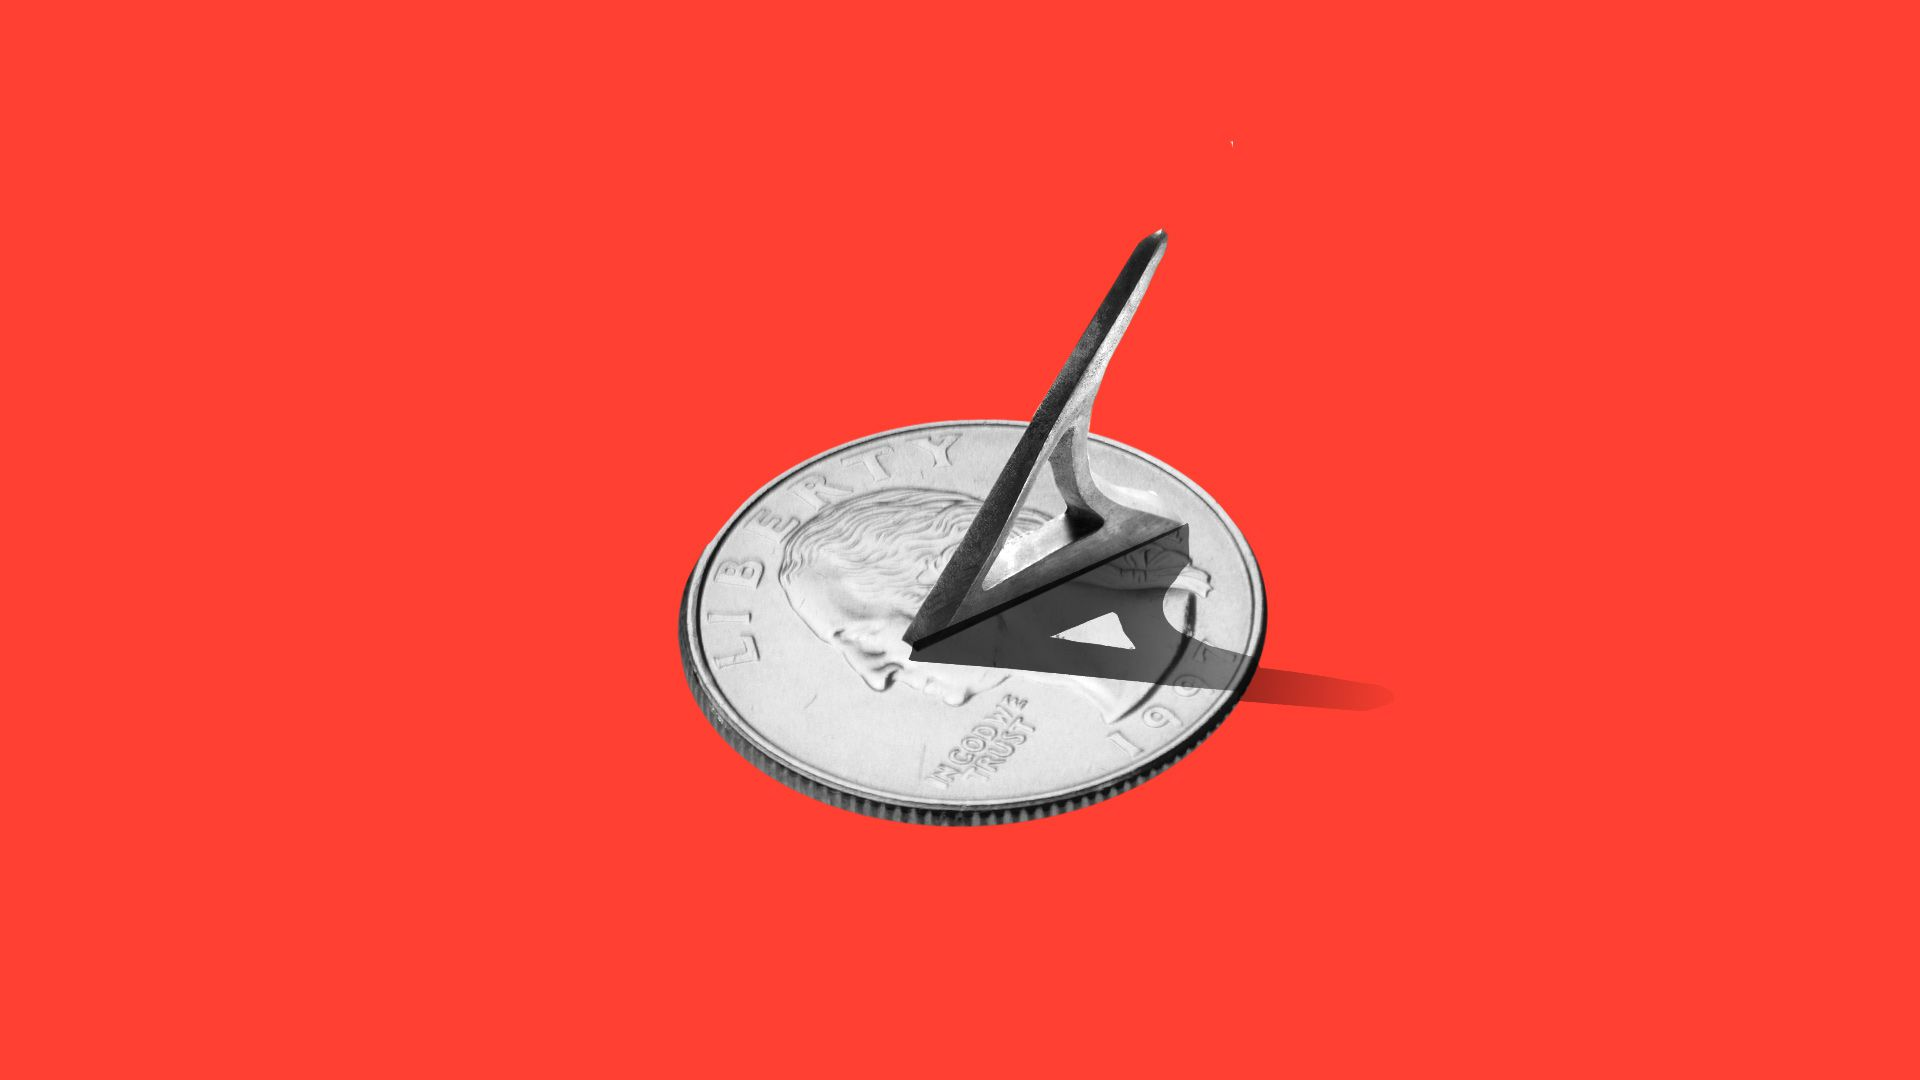 Illustration of a sundial with a quarter as the base.